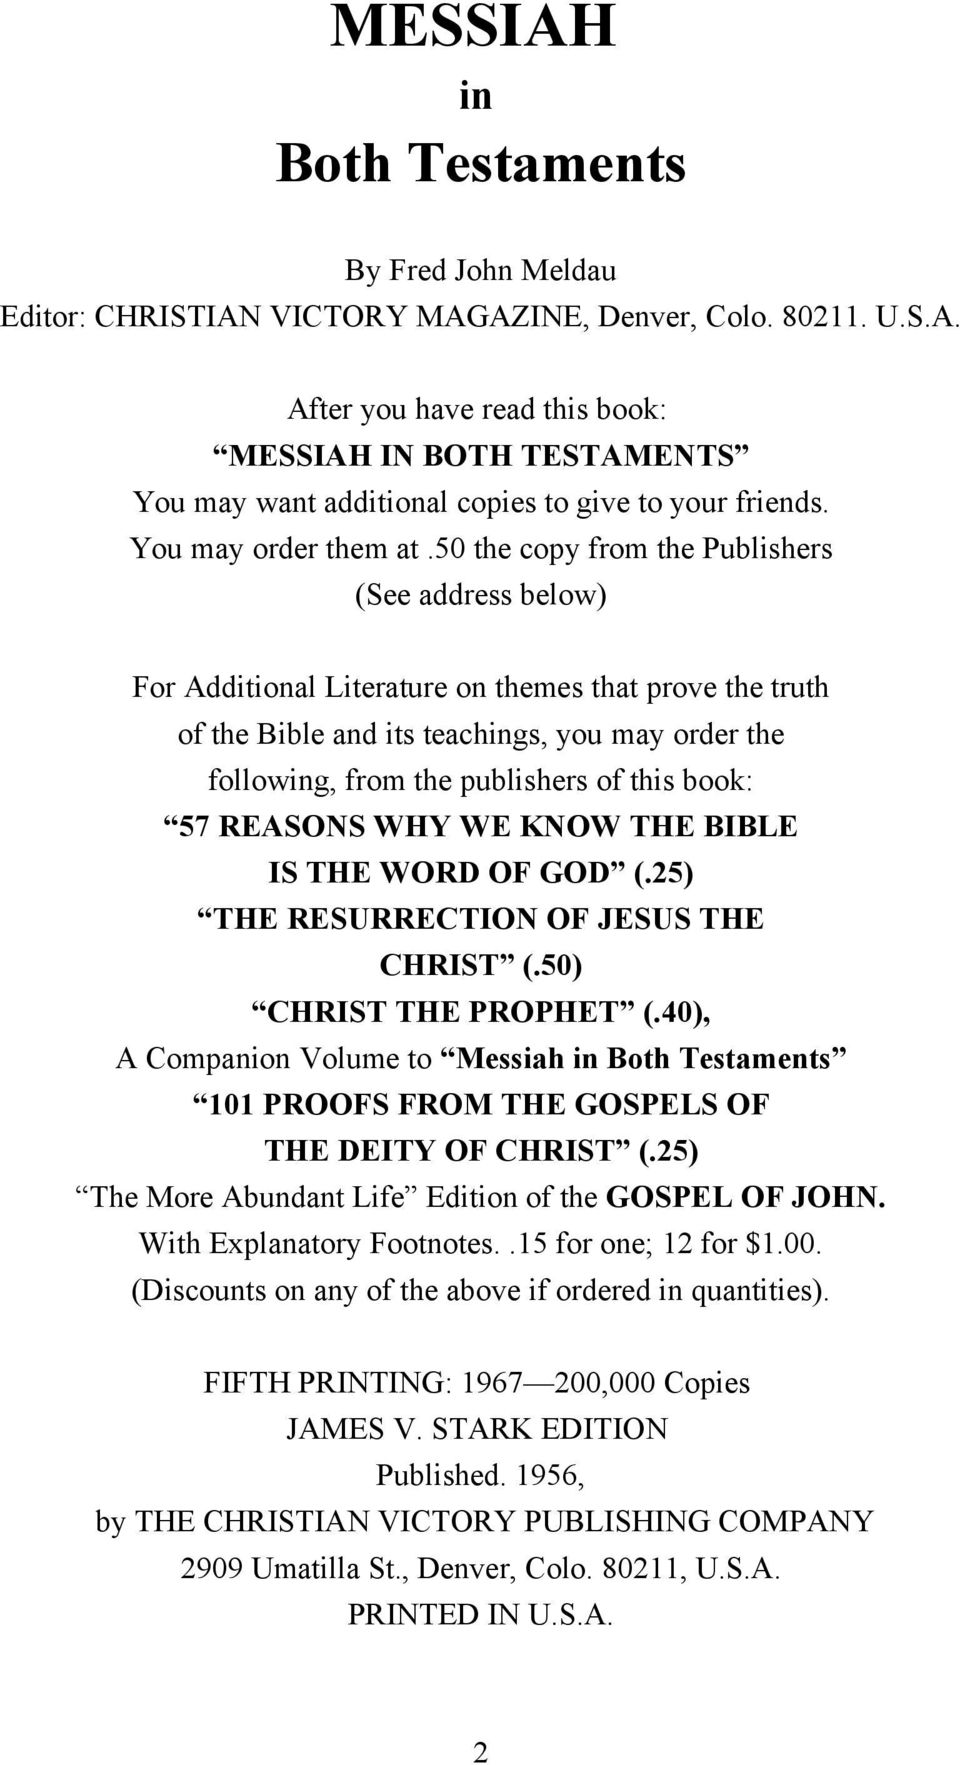 50 the copy from the Publishers (See address below) For Additional Literature on themes that prove the truth of the Bible and its teachings, you may order the following, from the publishers of this